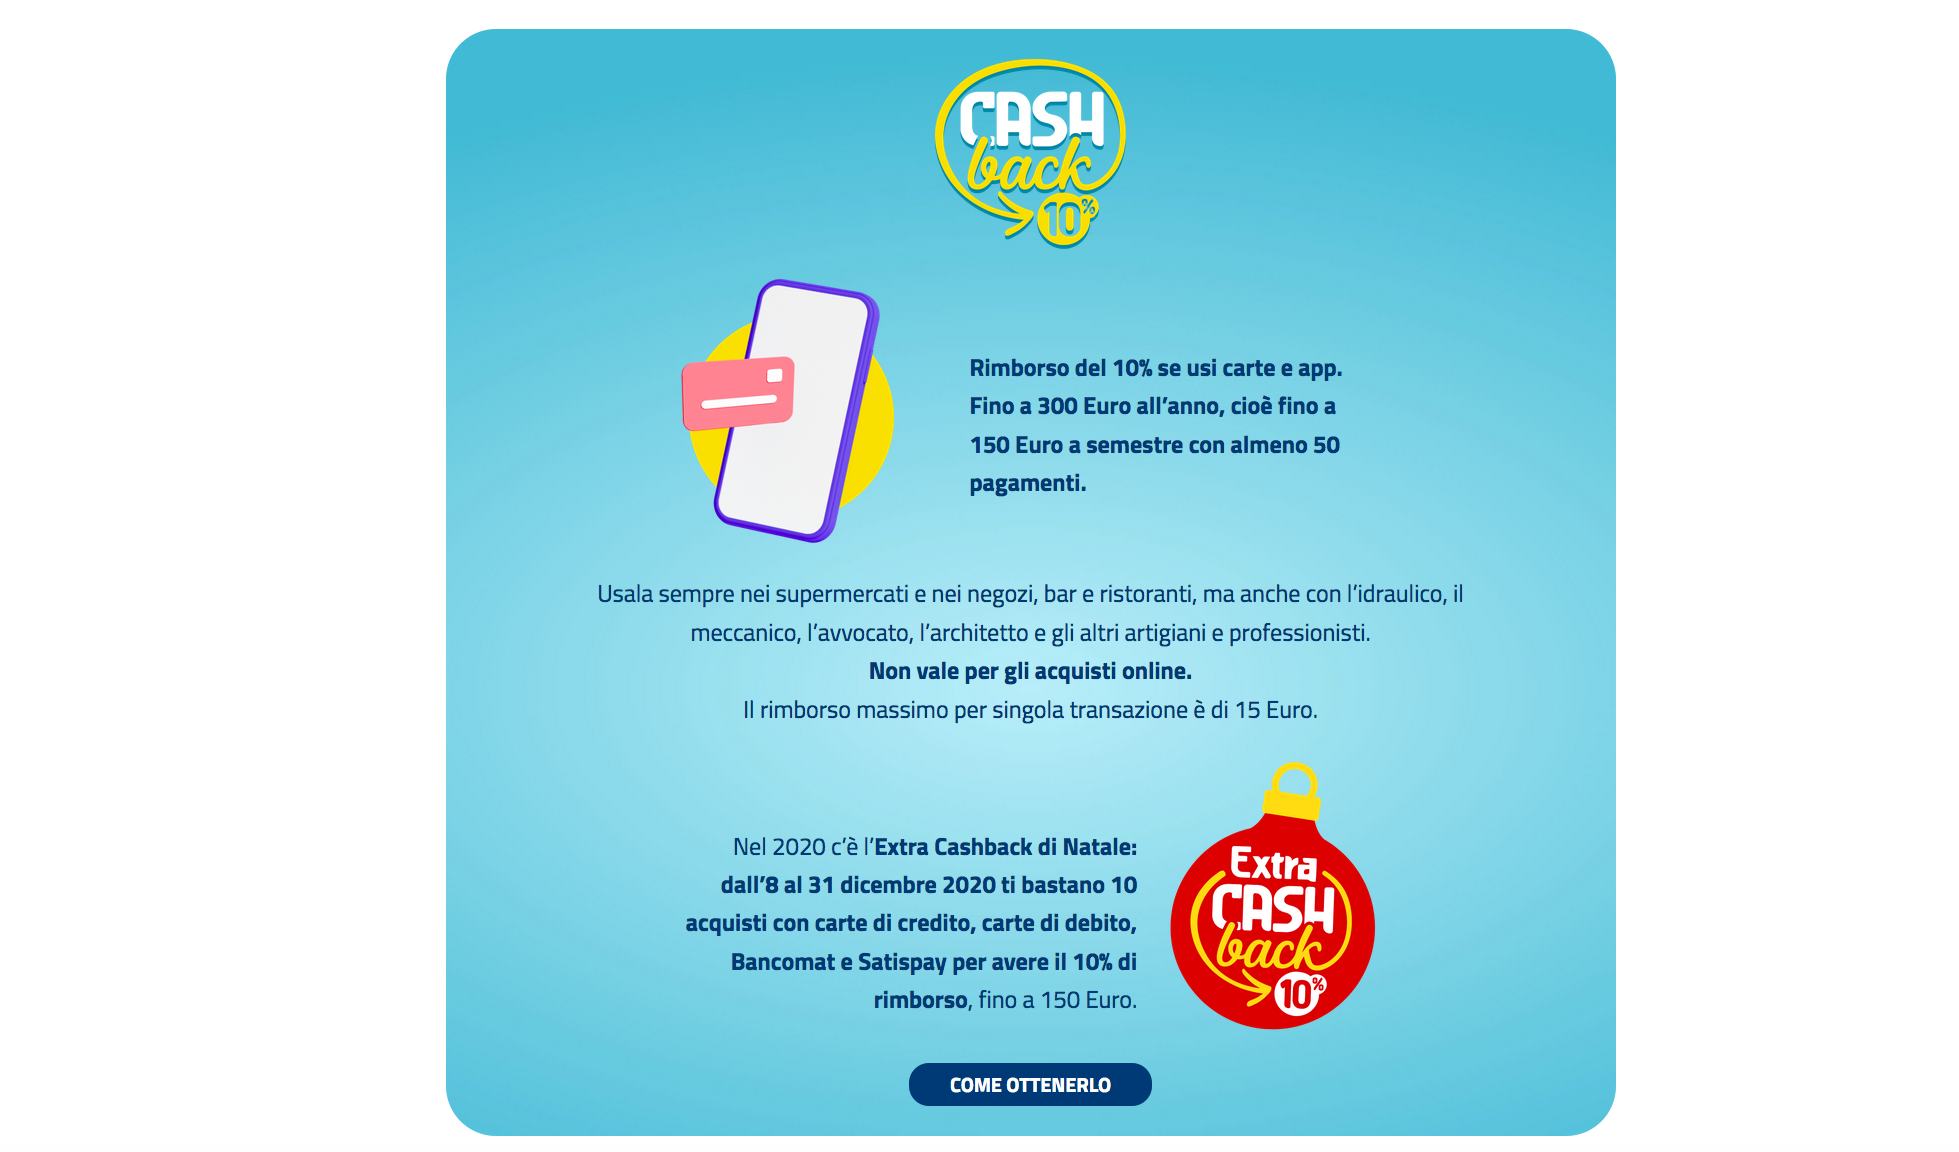 Extra Cashback di Natale